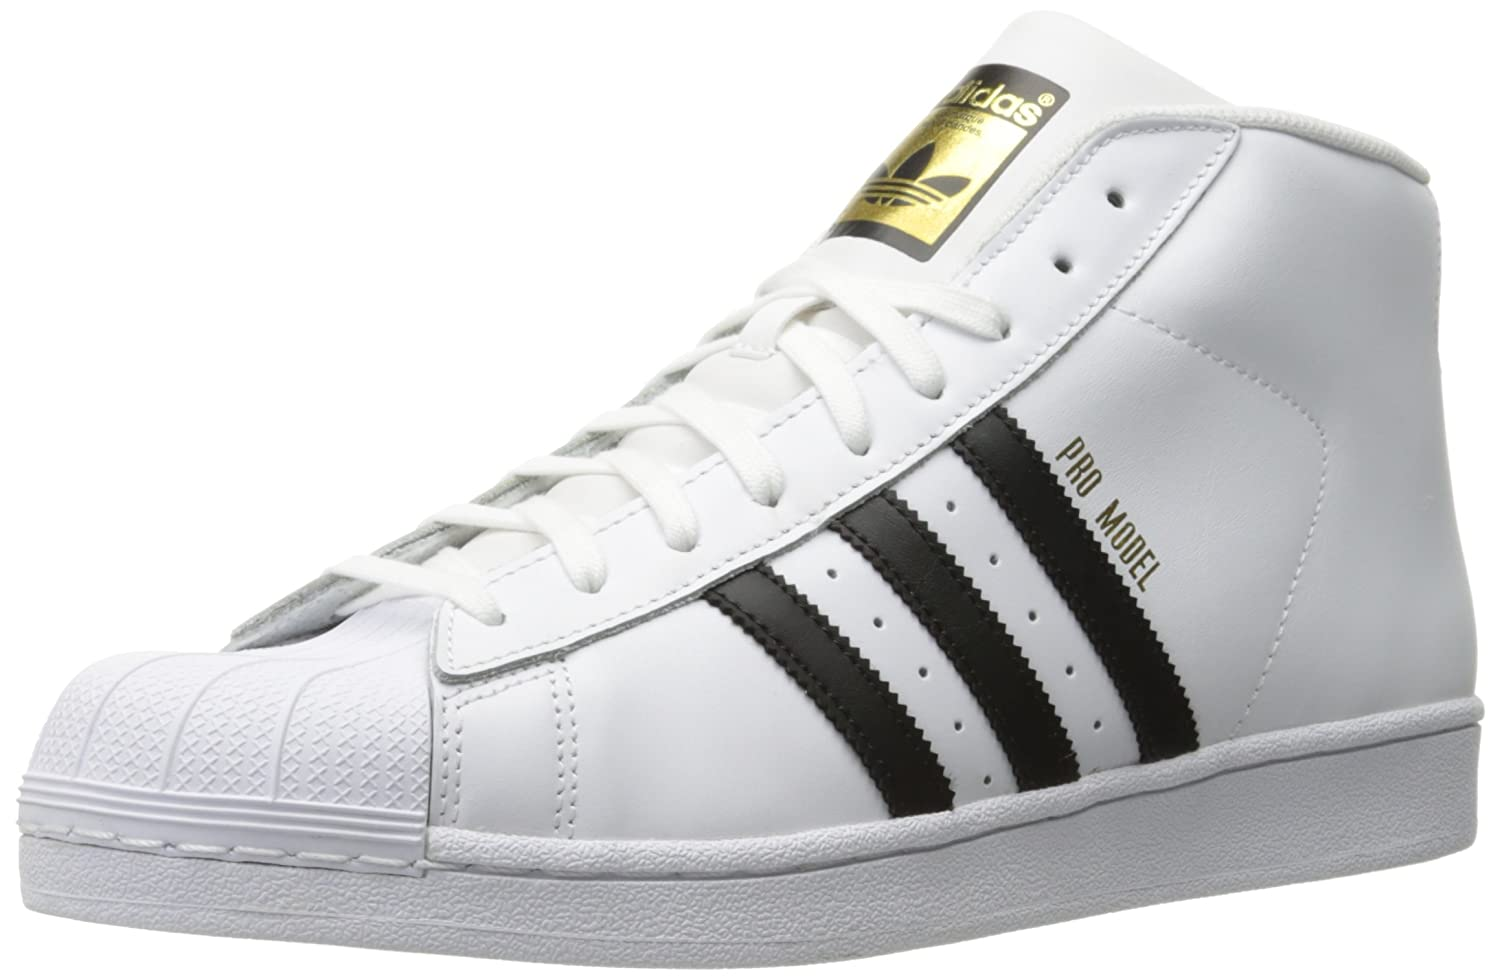 adidas Originals Spring 2013 Superstar 80s Running White